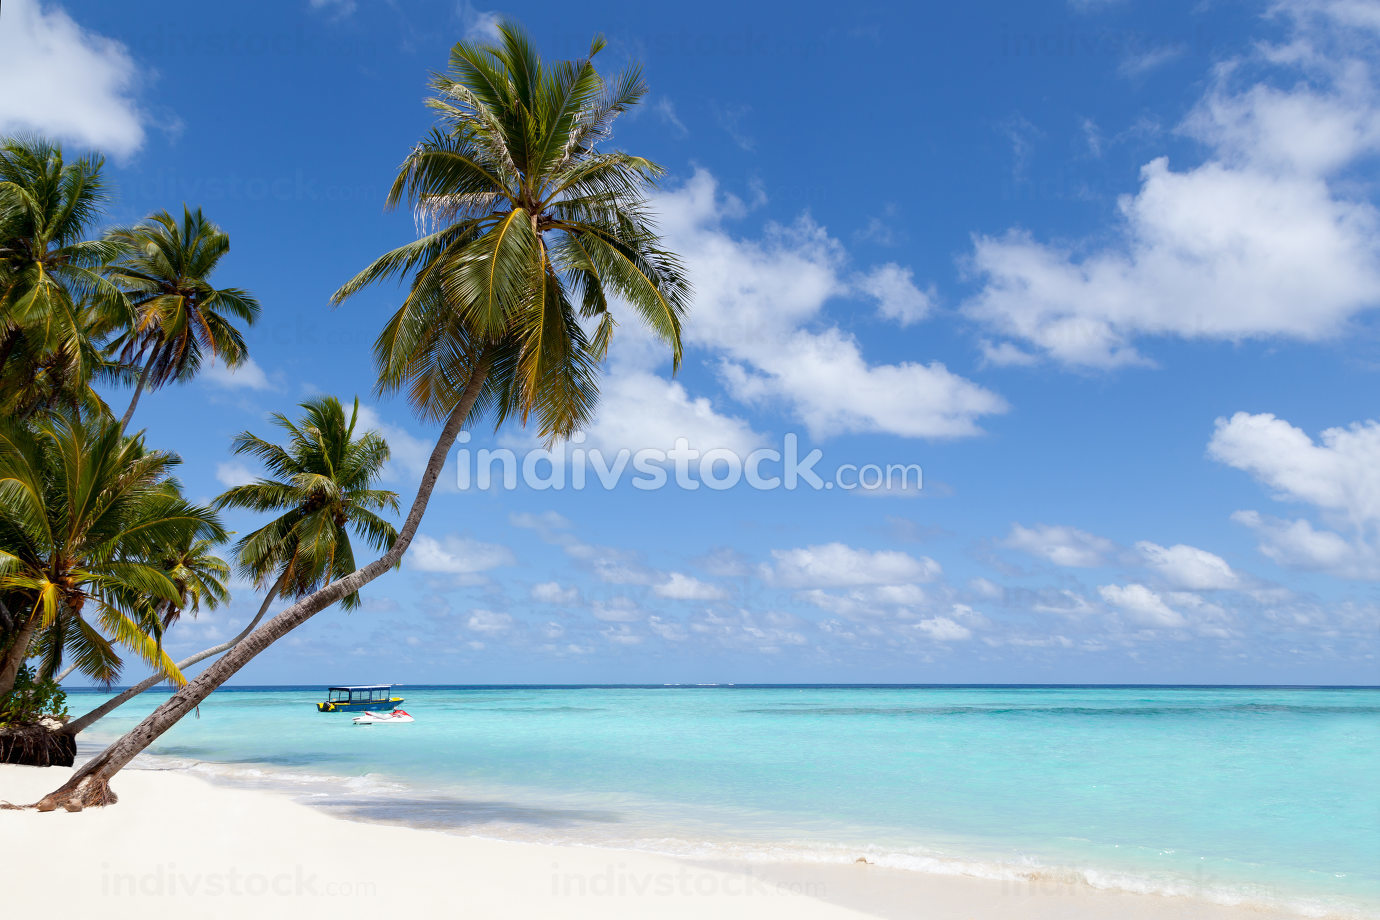 Maldives, a tropical island with palm trees and a view over the